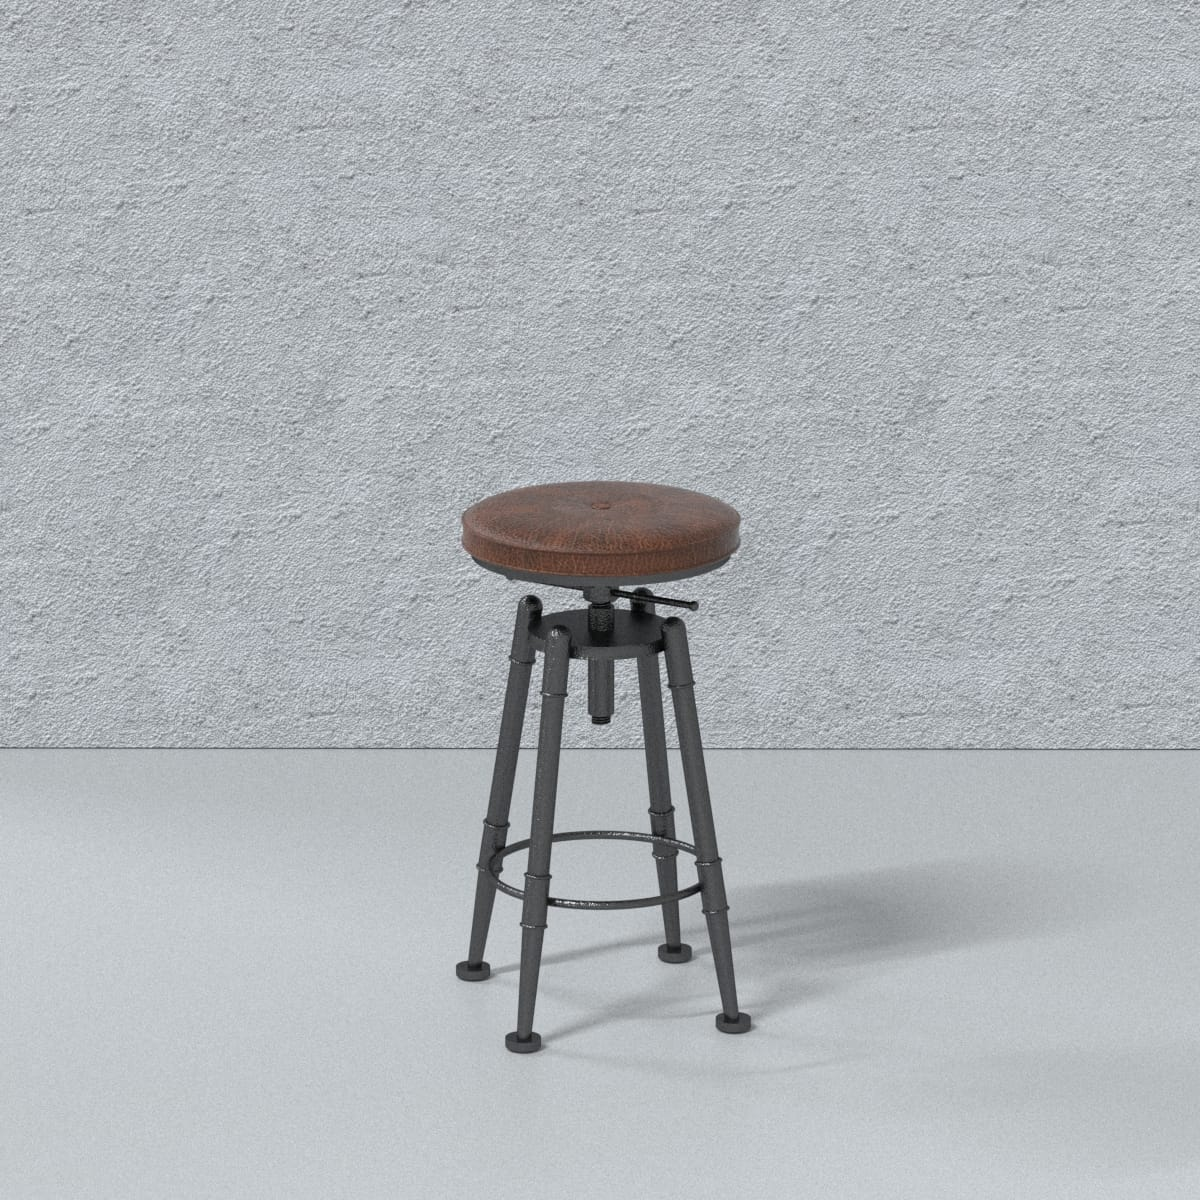 Cool Furniture Design Winery Pub Club Functional Metal Stool Taiwantrade Com